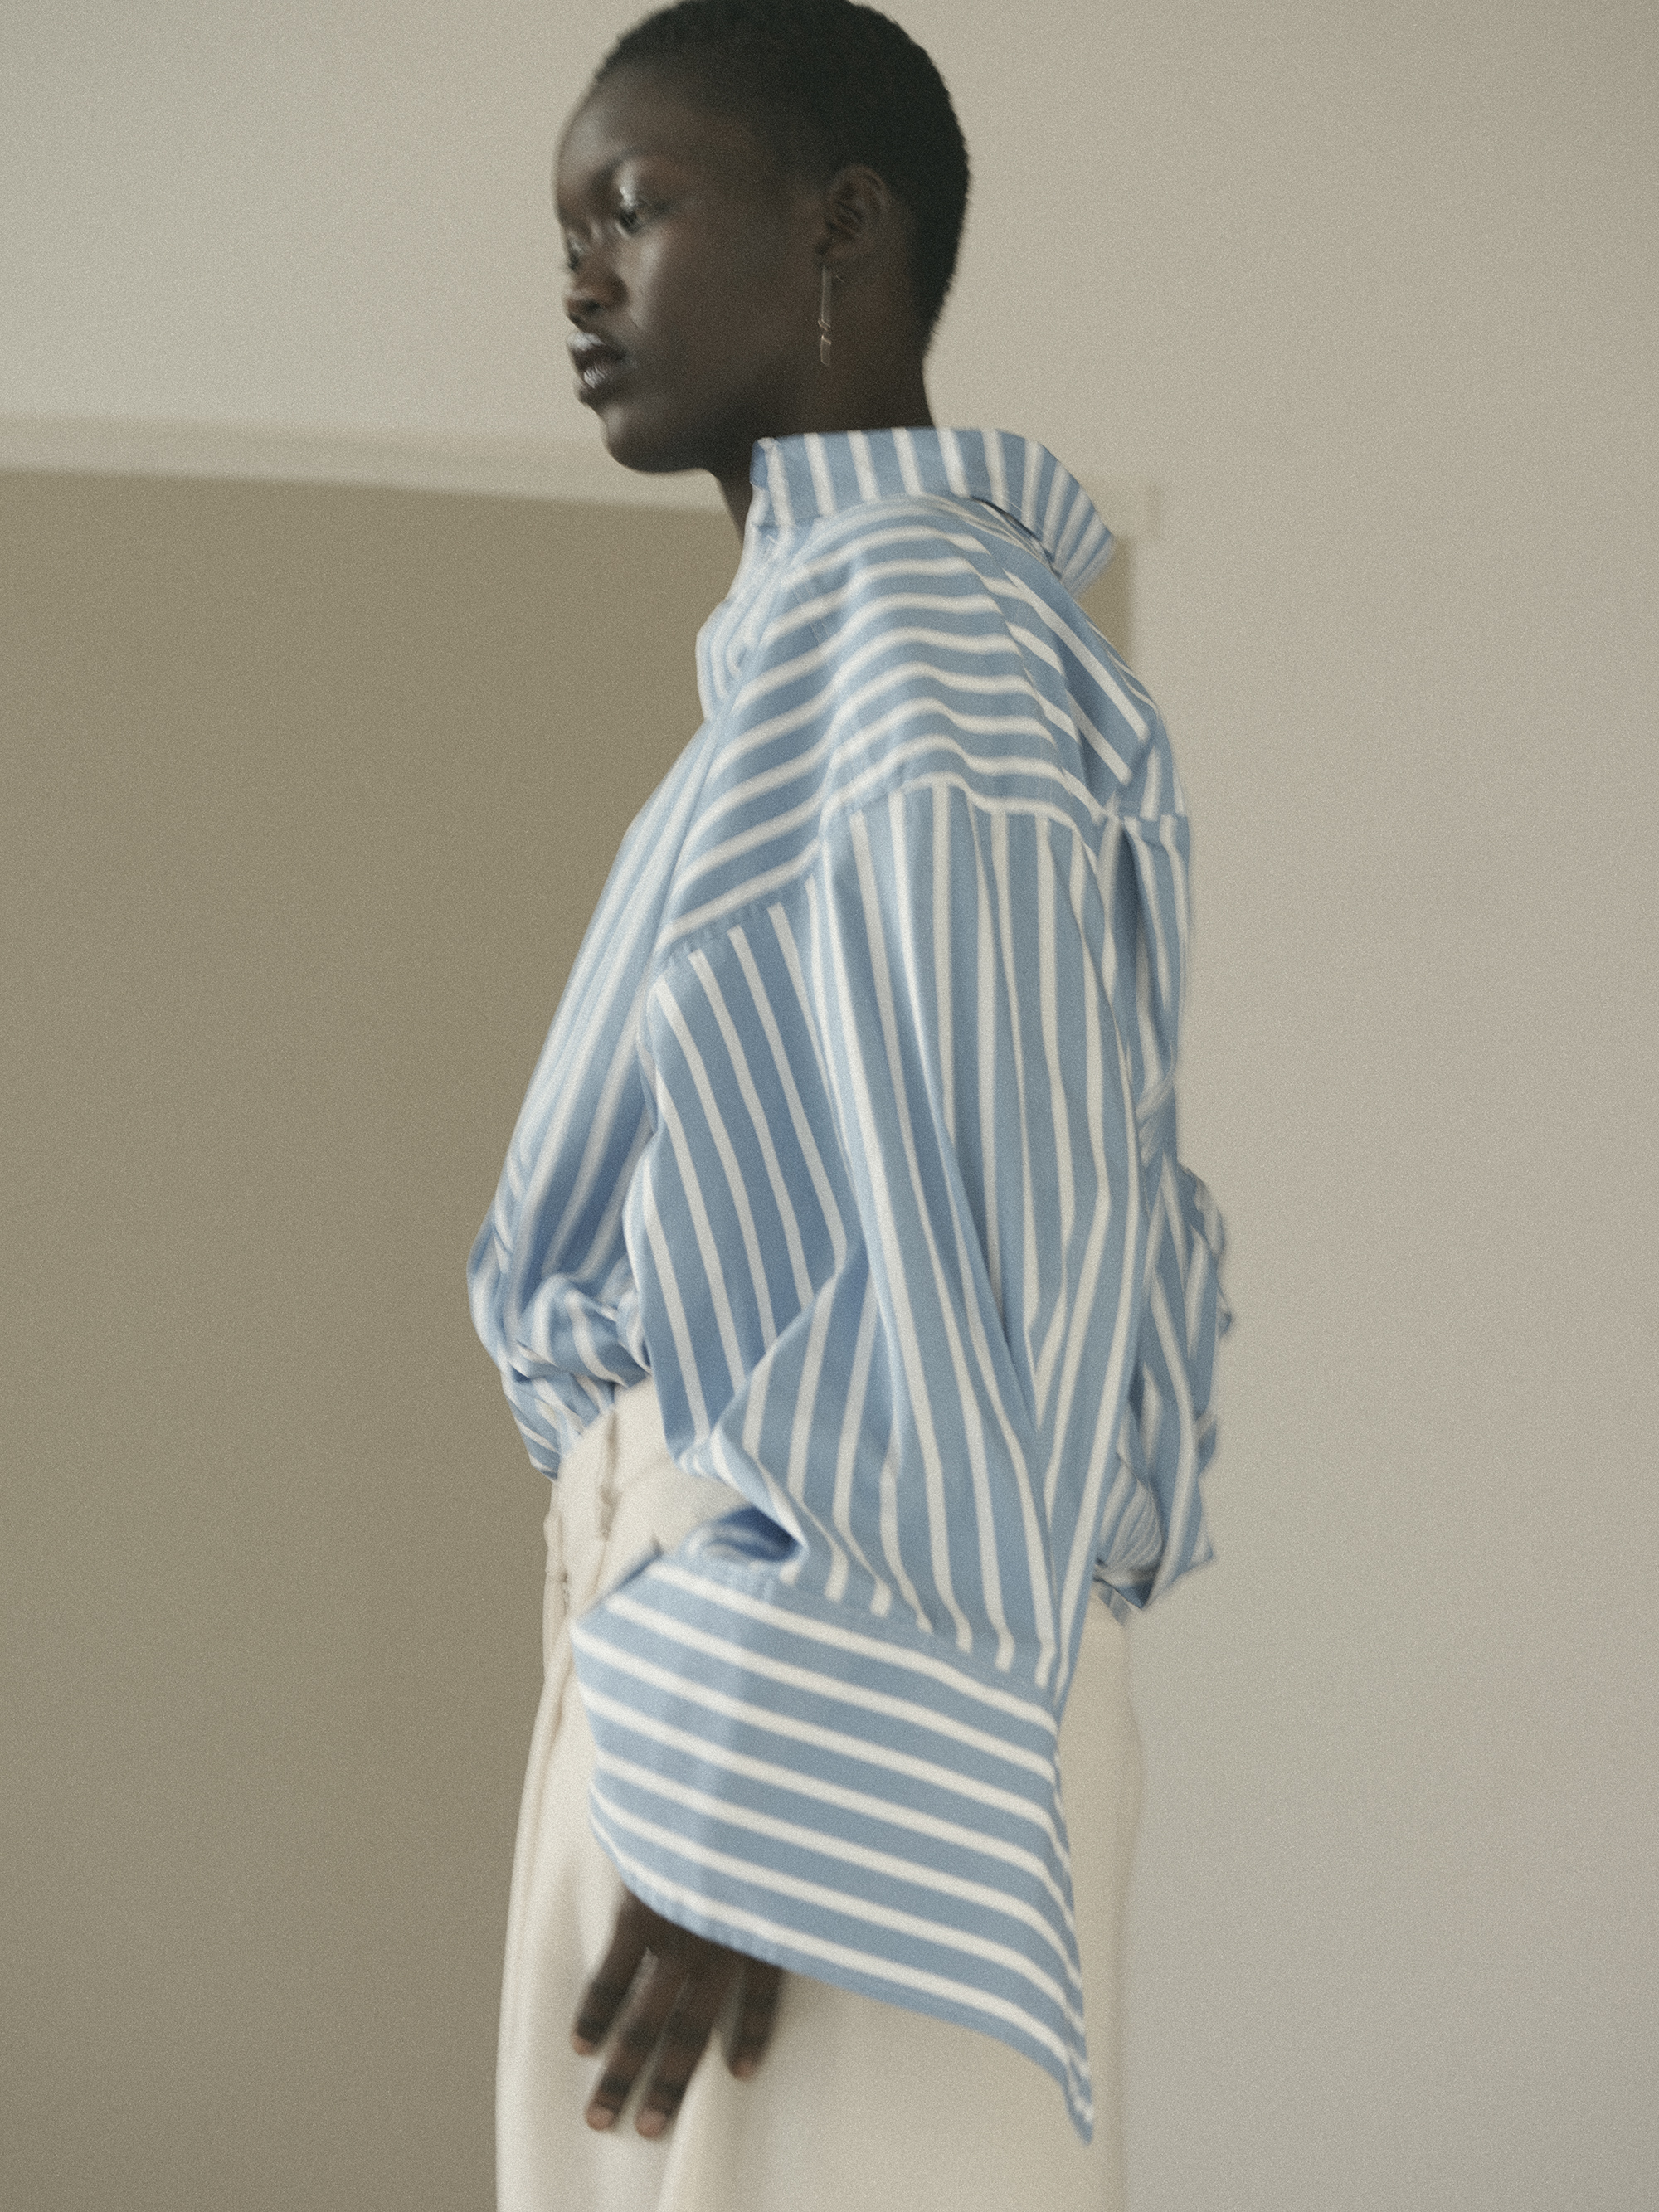 Oversized striped shirt with oversized cuffs  Schuellerdewaal . Off white oversized pants  ESSENTIAL ANTWERP